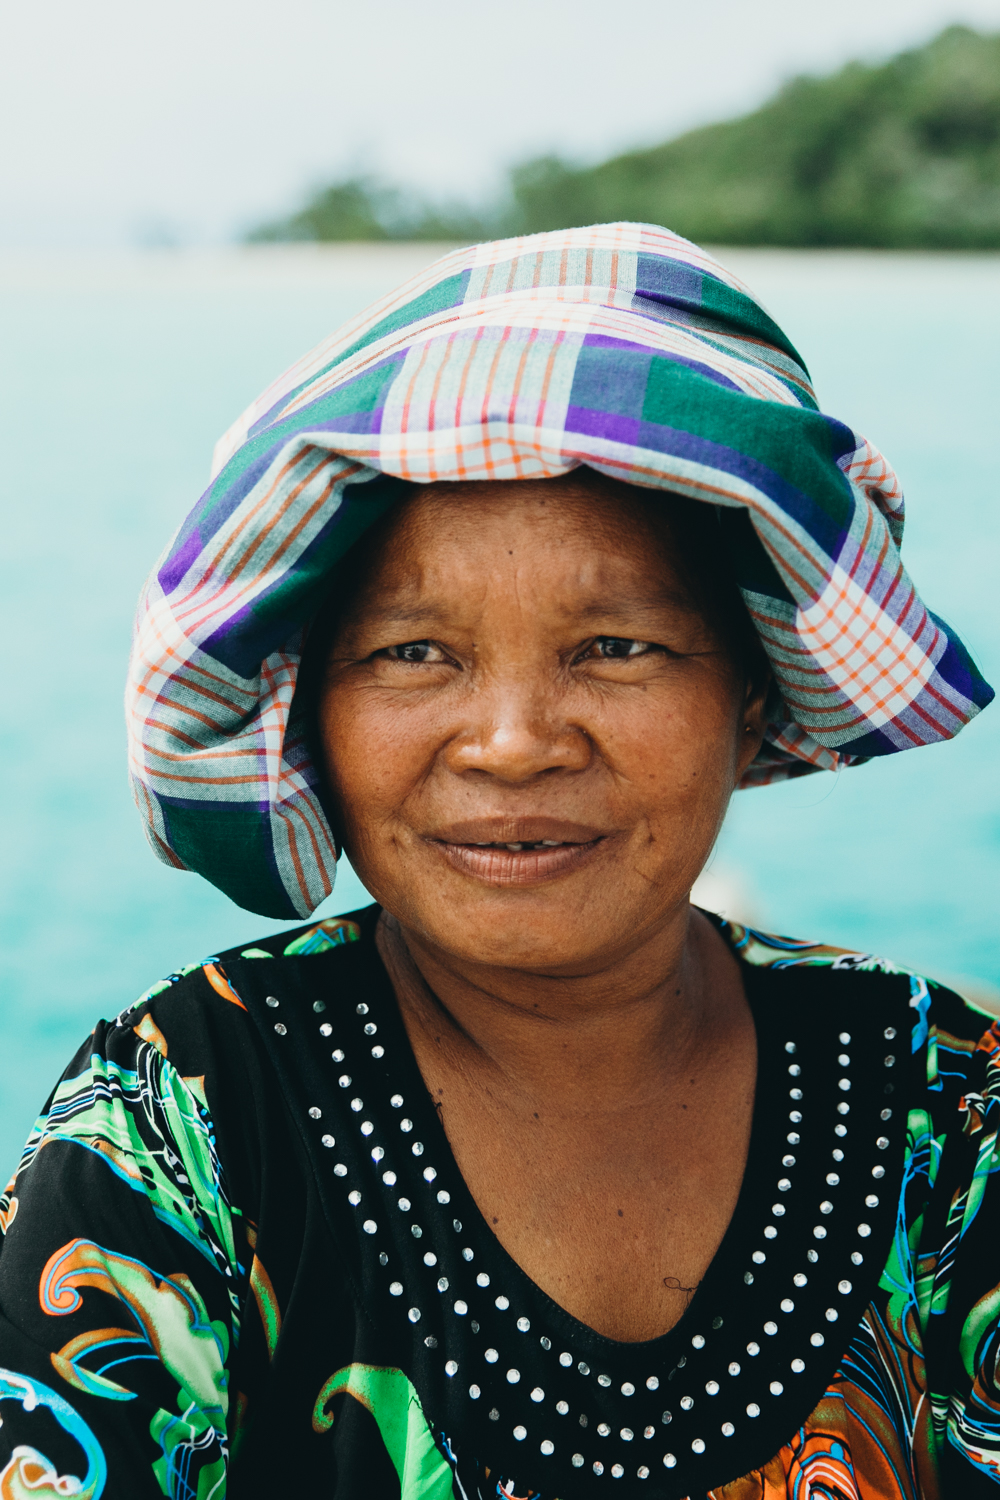 A Bajau woman in Borneo.